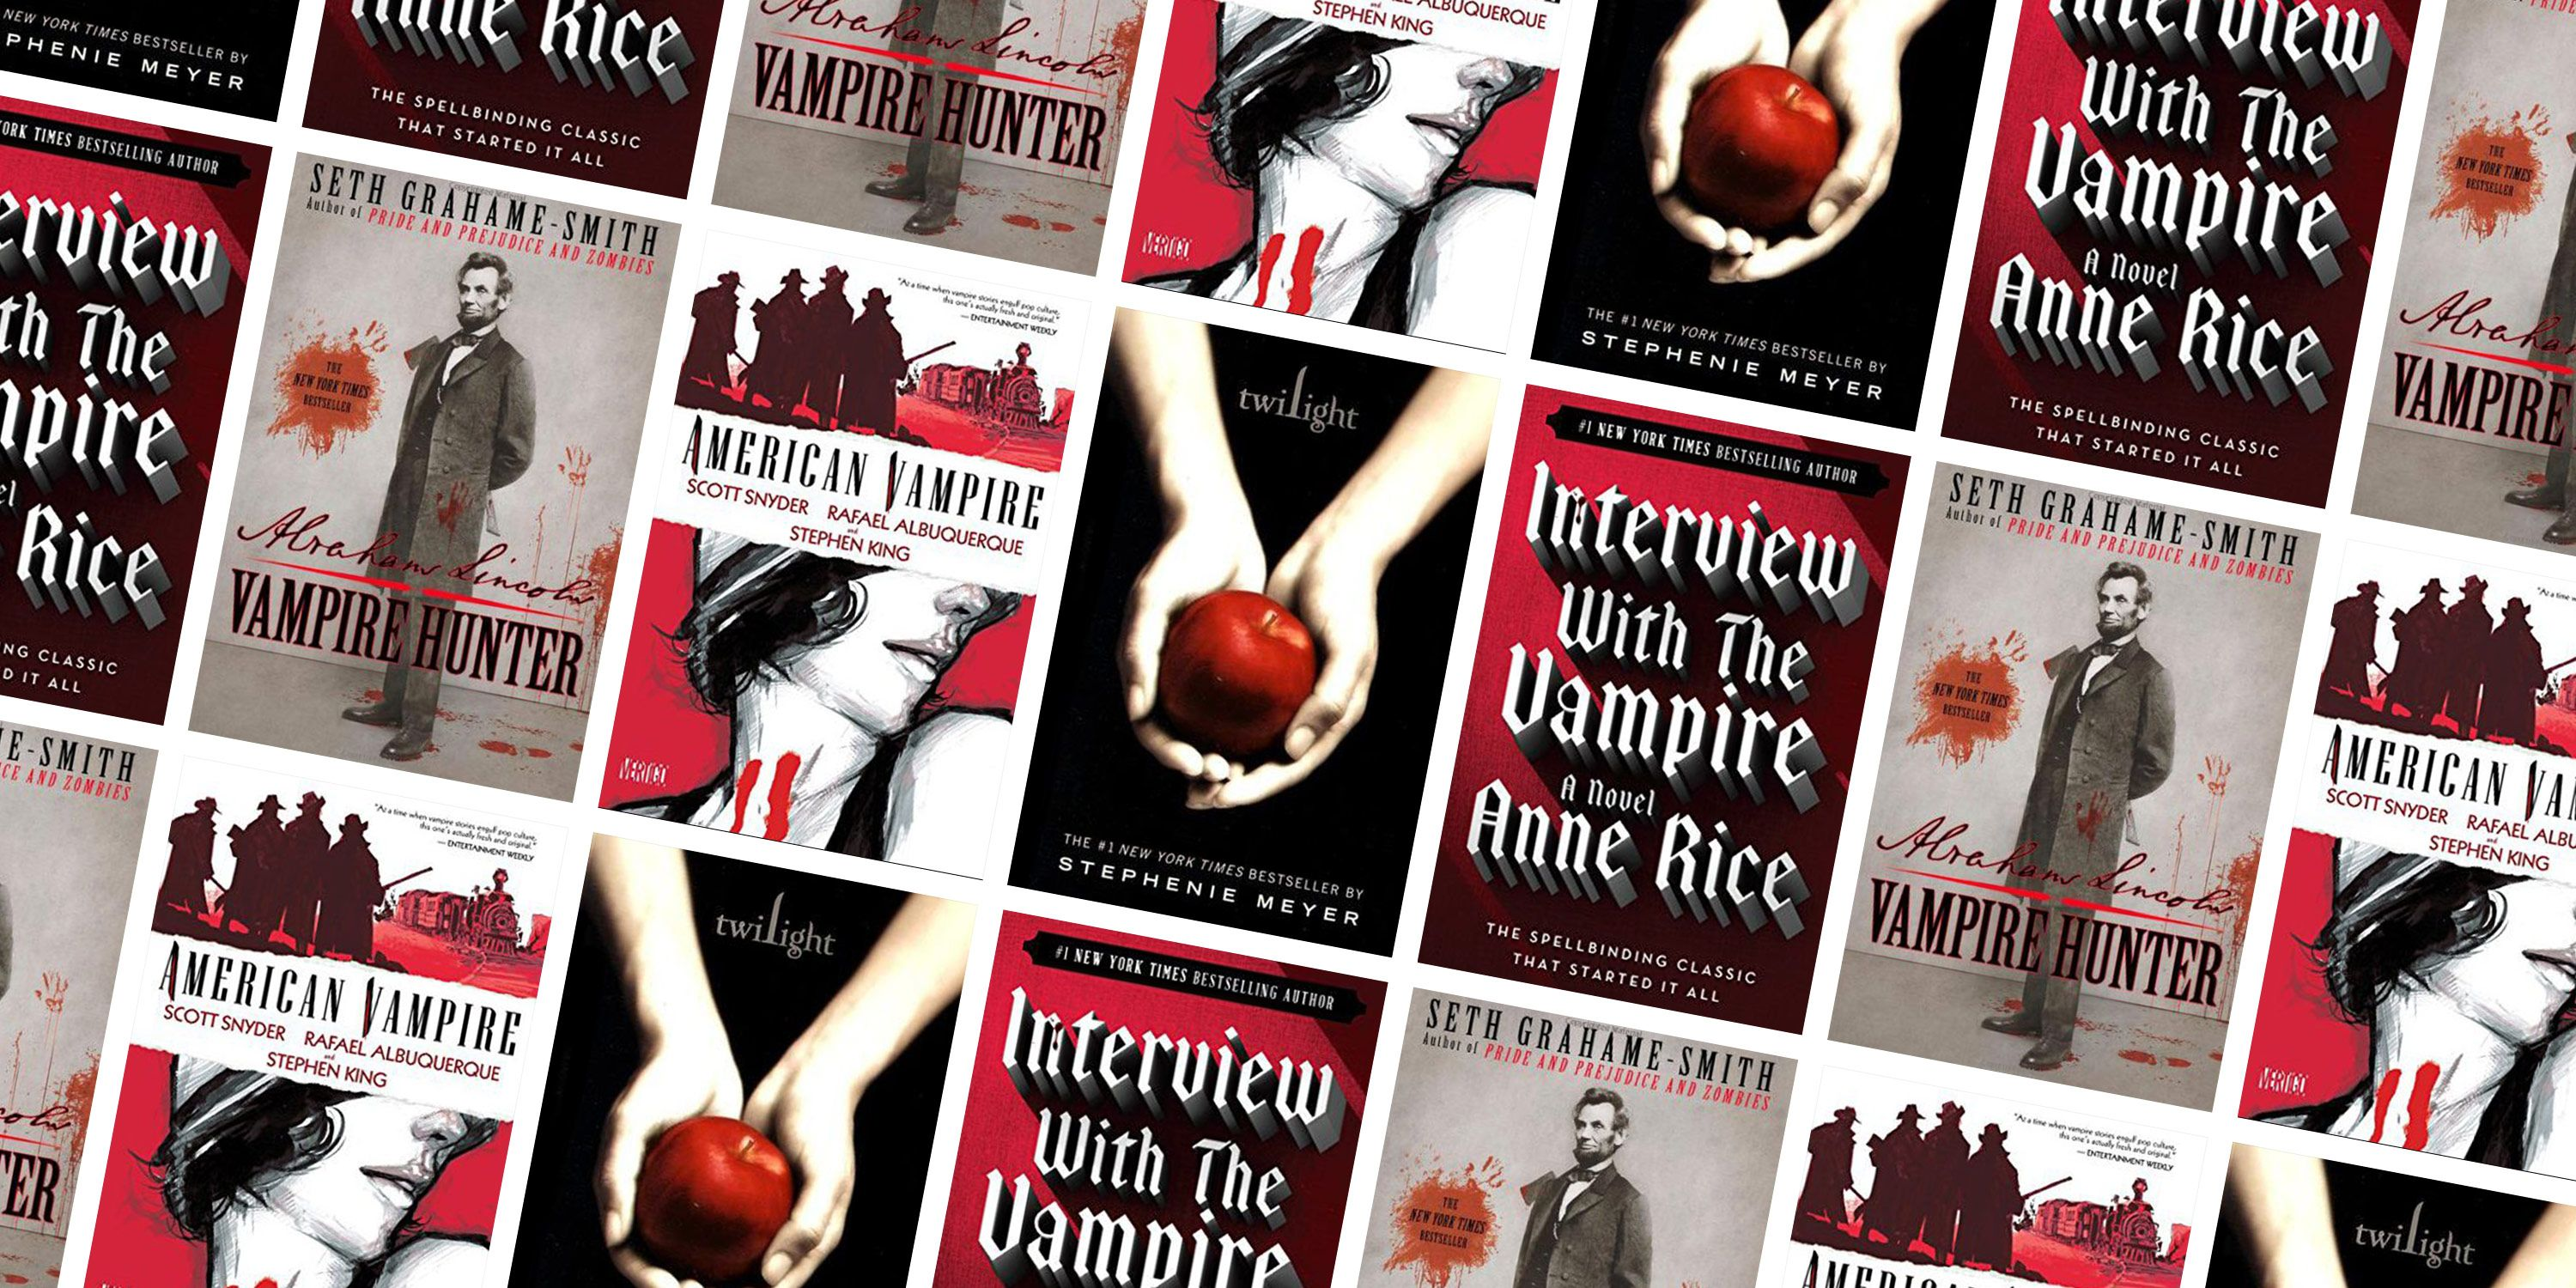 Not Your Mothers Vampire: Vampires in Young Adult Fiction